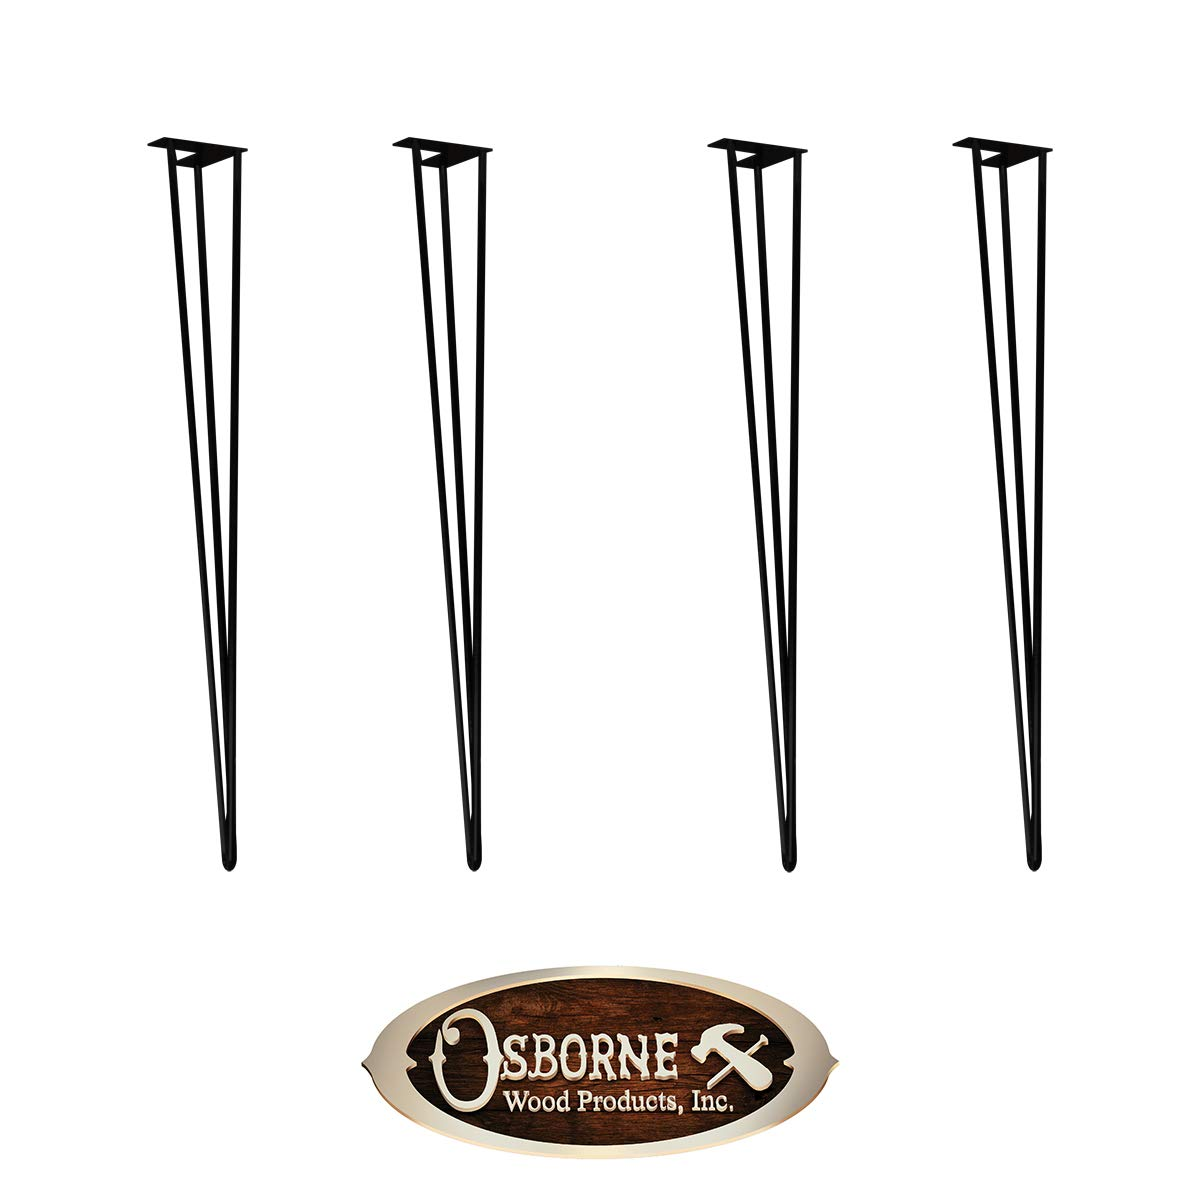 Set of 4 Black Steel Metal Hairpin Legs - Dining Table Height (29'' x 4'') - Hardware Included - Industrial Heavy Duty